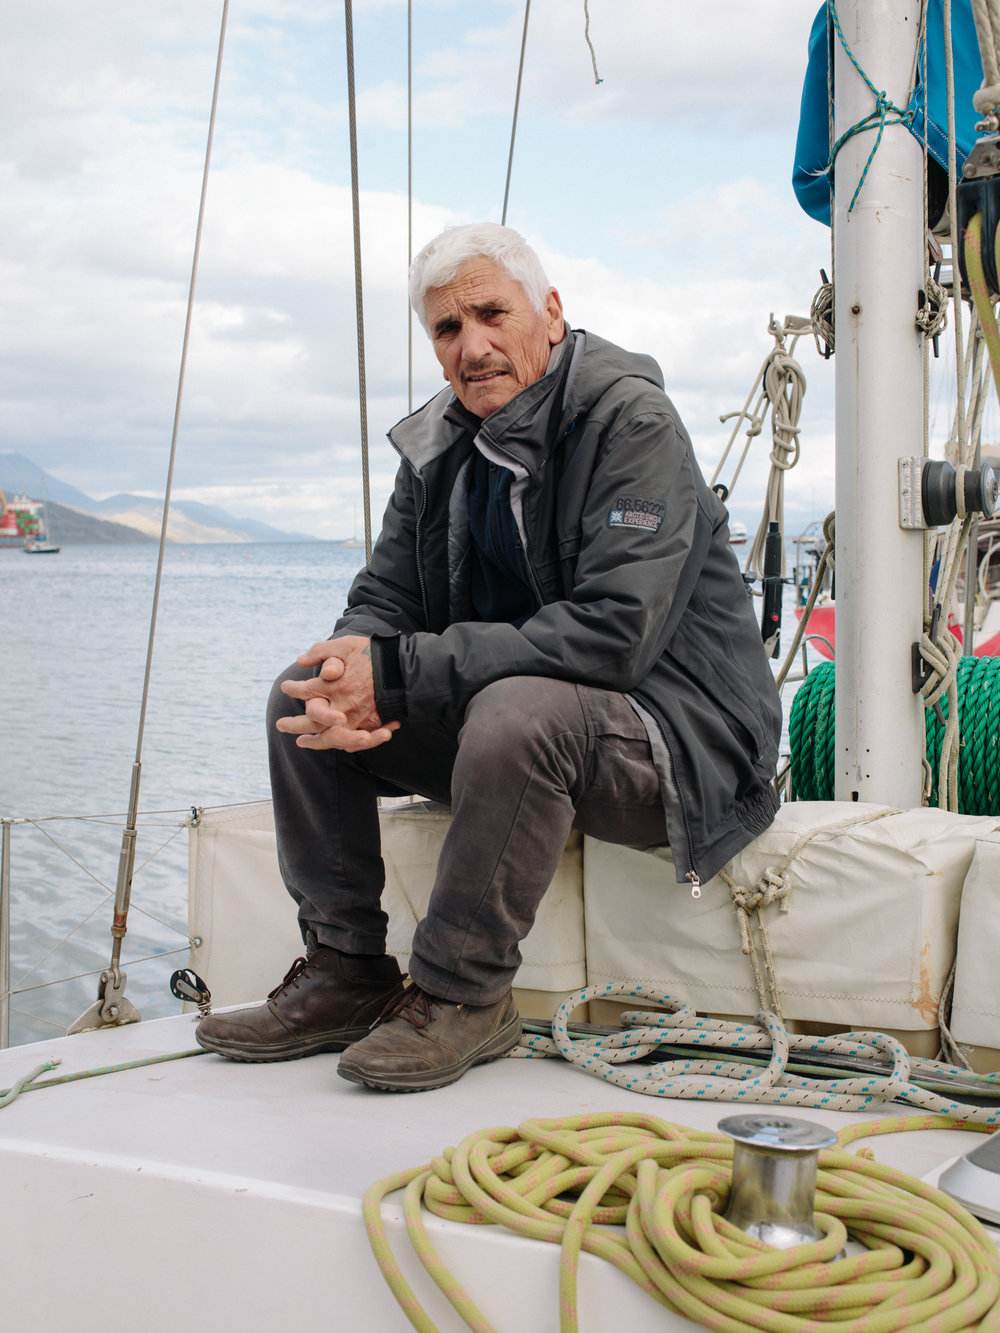 Antonio Guglielmo, an Italian skipper who lives in Ushuaia since 16 years. He lives in his boat, offering touristic cruises o to Cape Horn island and Antarctica.